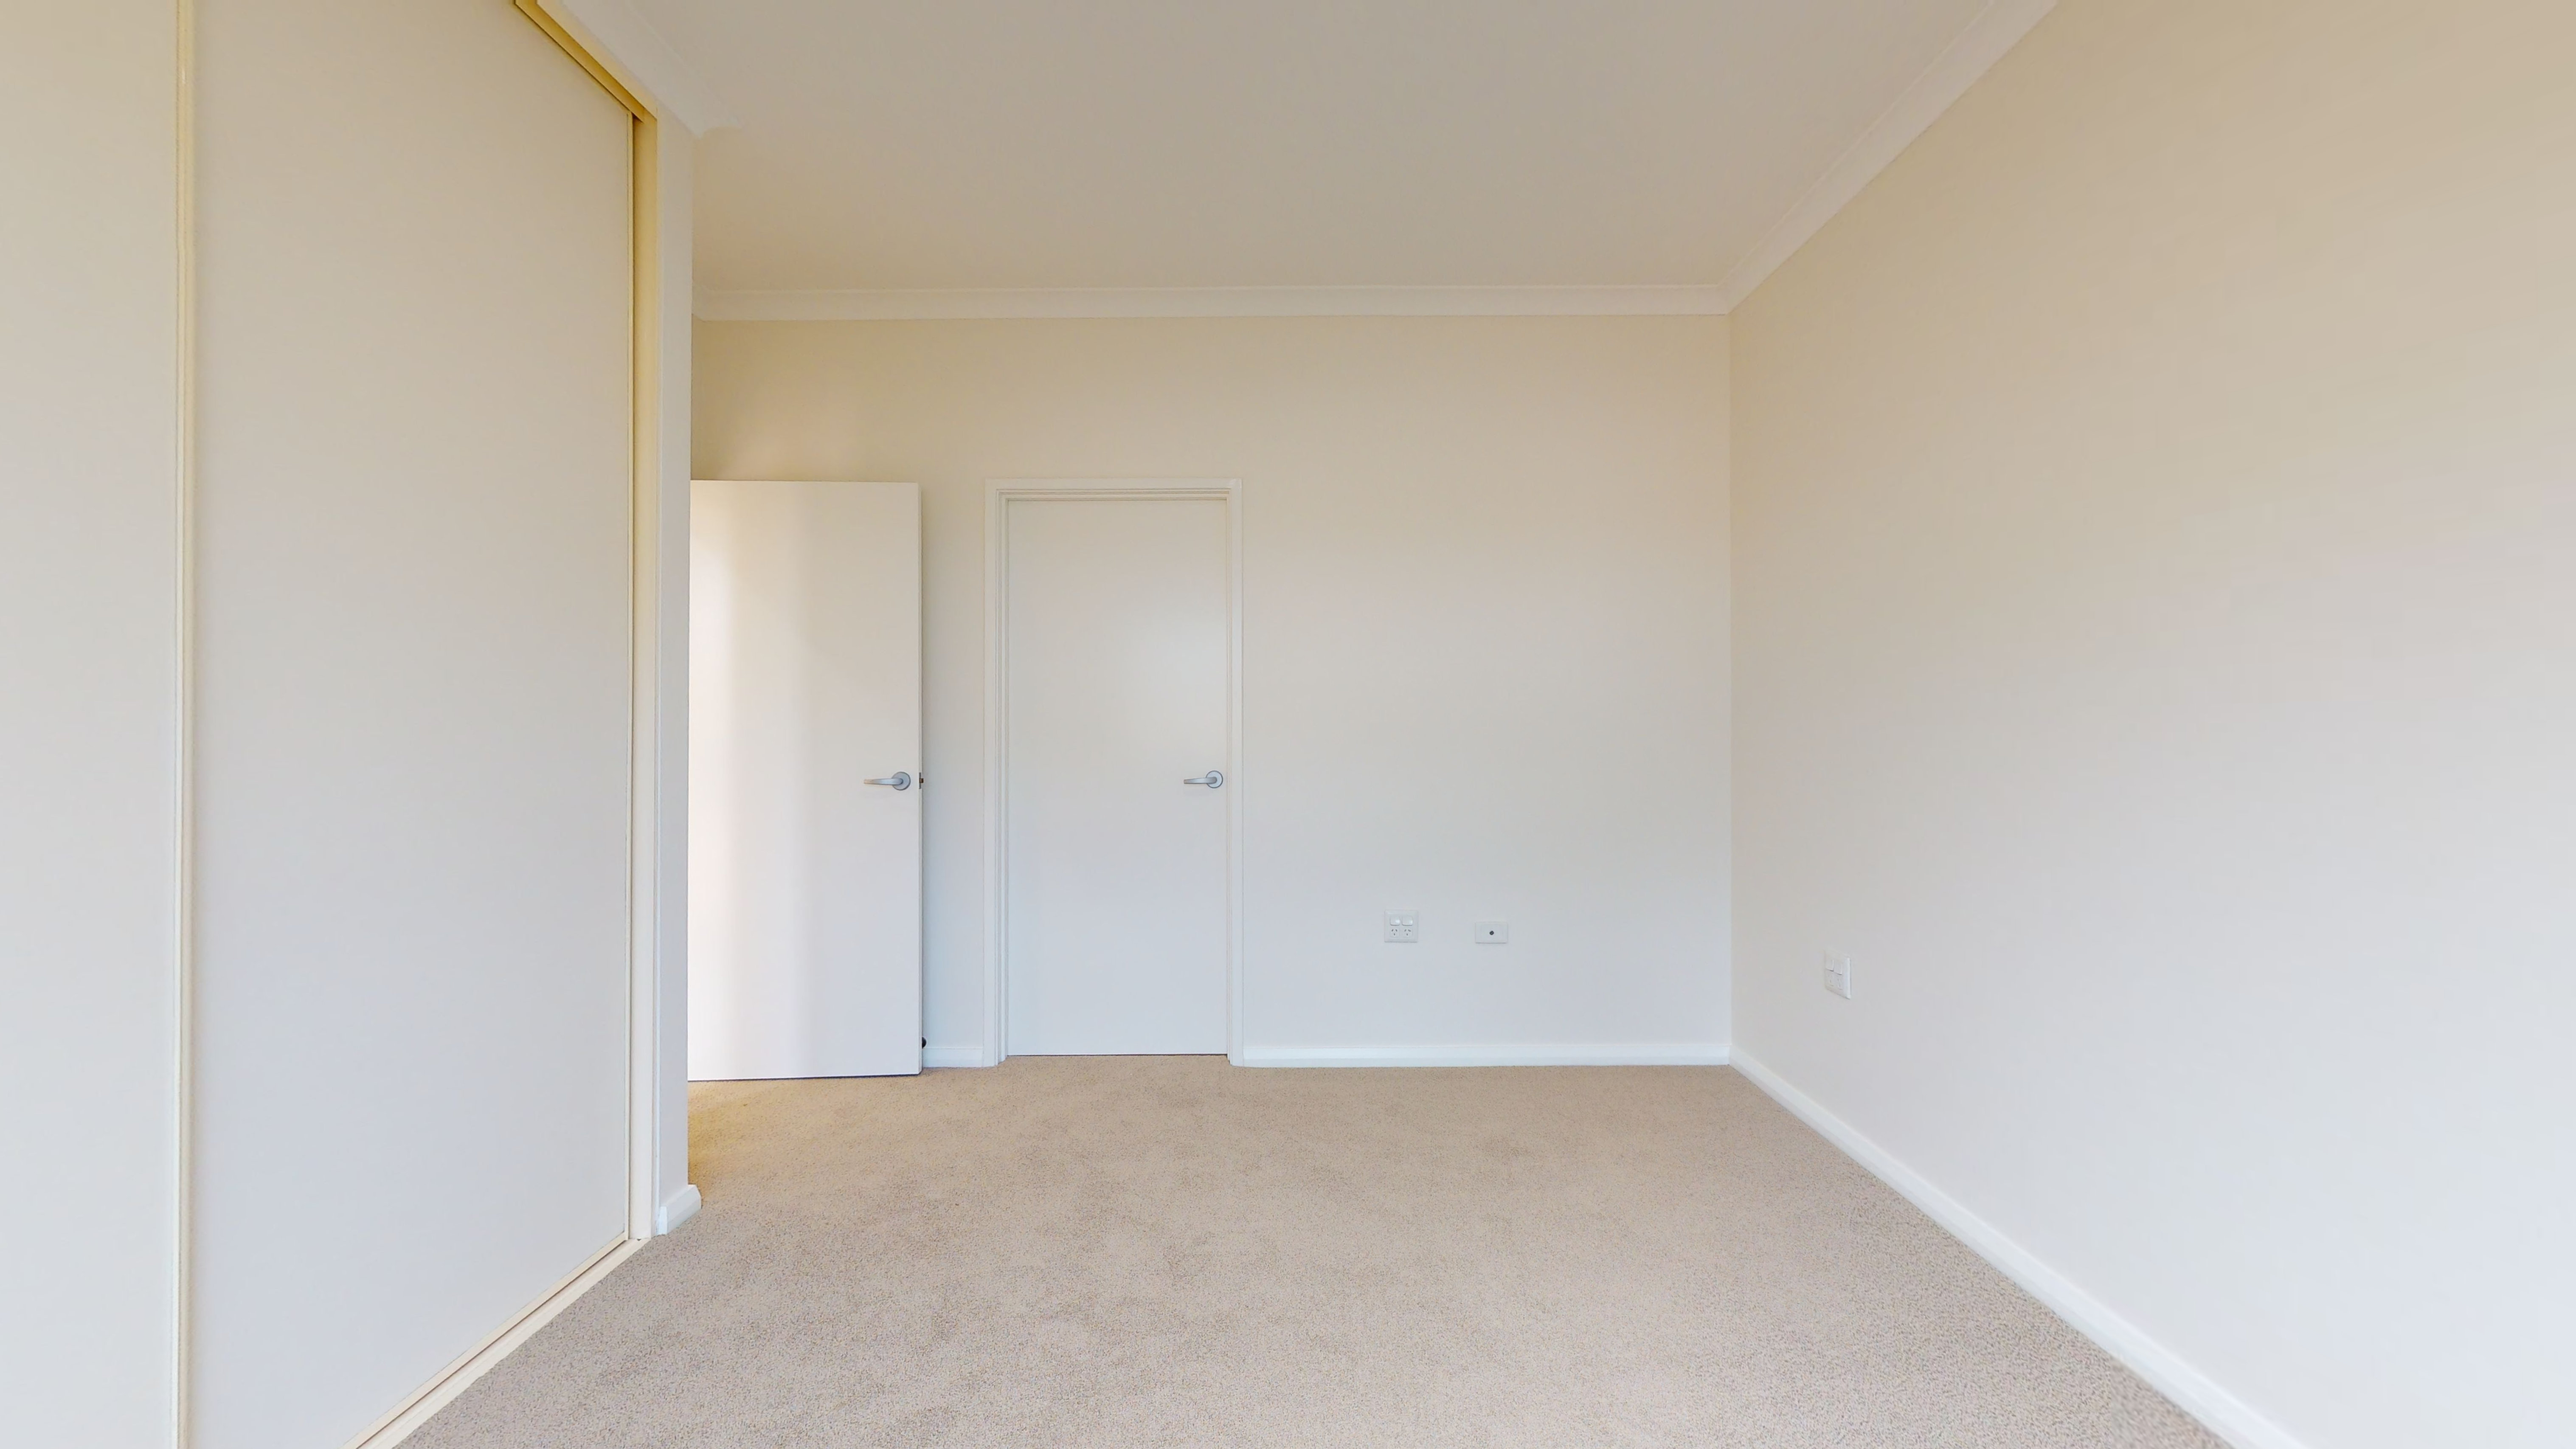 34748233 1626061627 31833 96 22 Carnegie Place Greenfields Main Bedroom